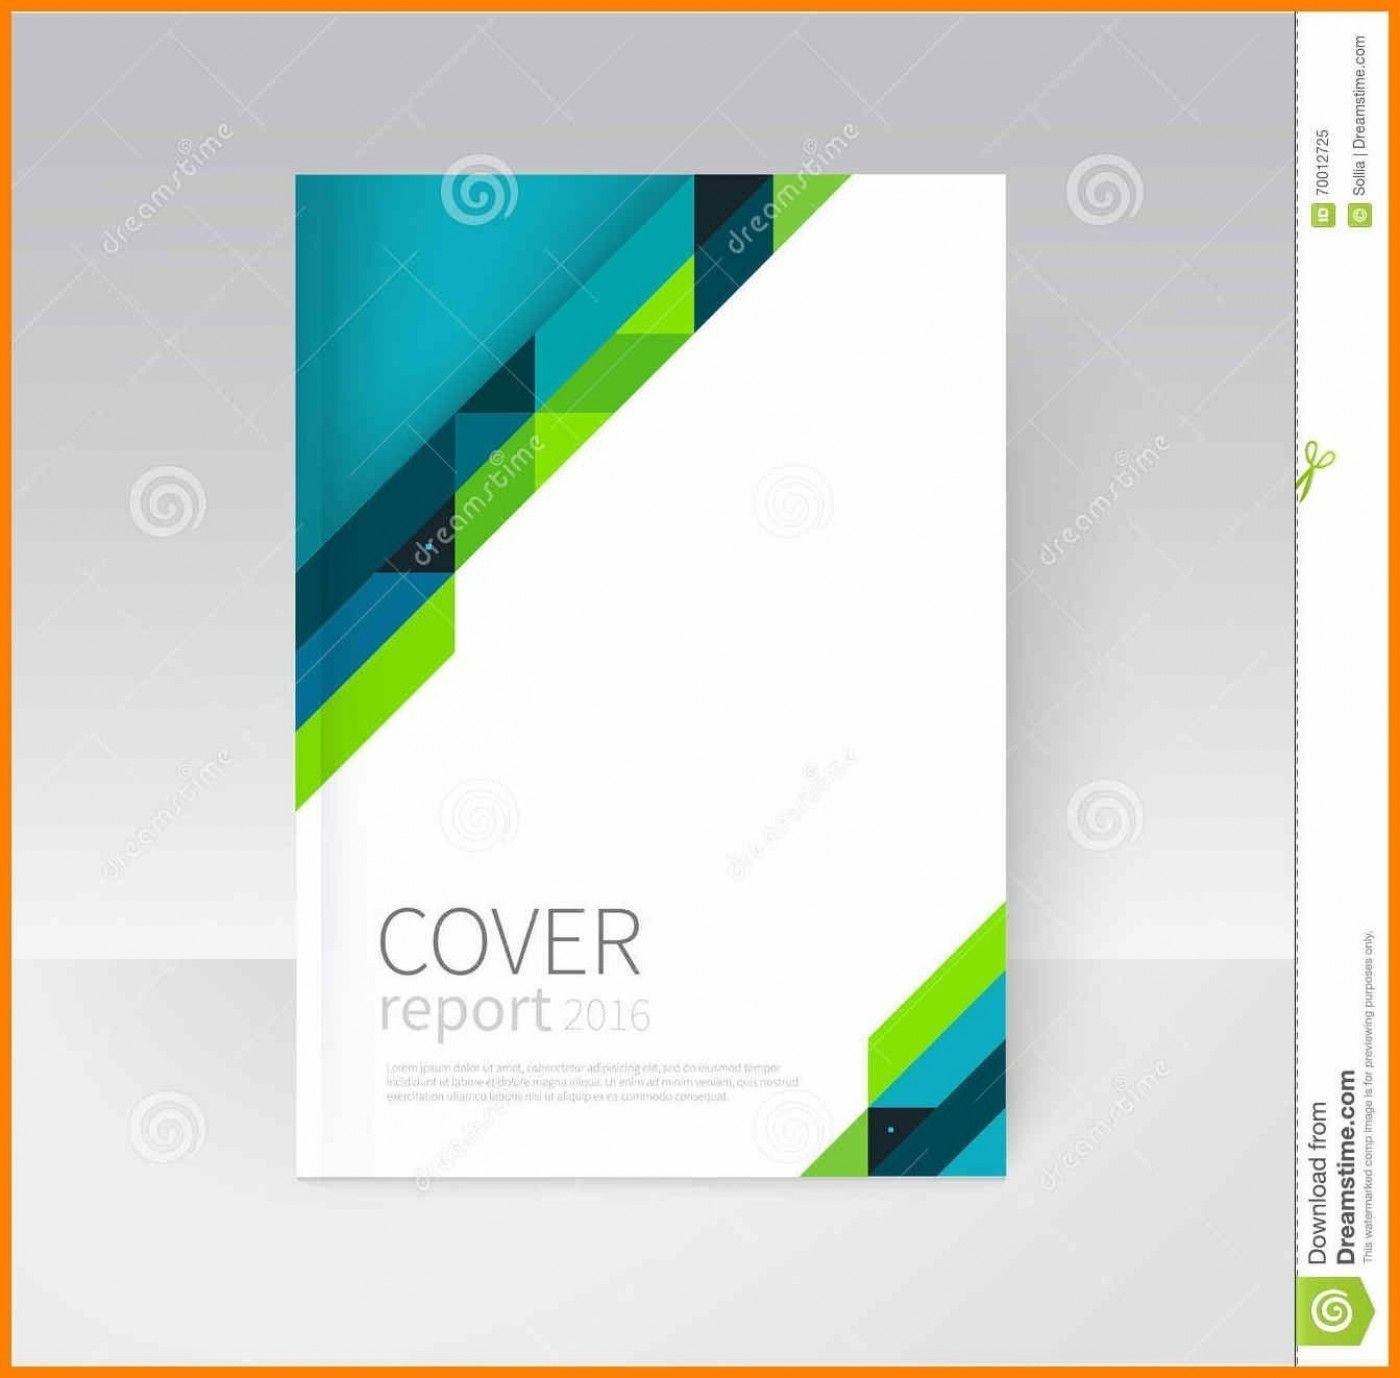 008 Beautiful Free Download Annual Report Cover Design Template Picture  Page In WordFull